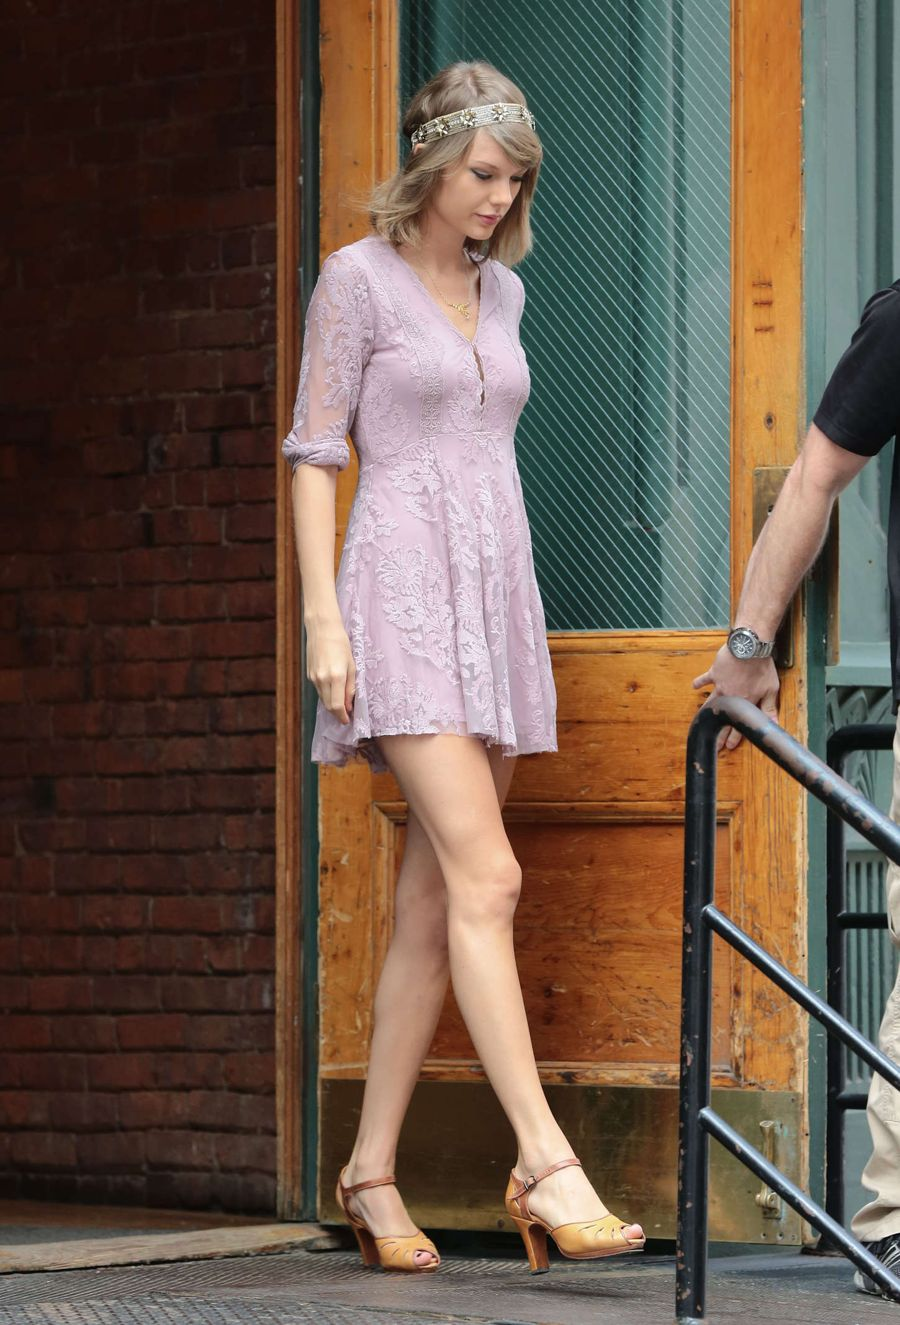 Taylor Swift Is Pretty In A Pink Lace Dress